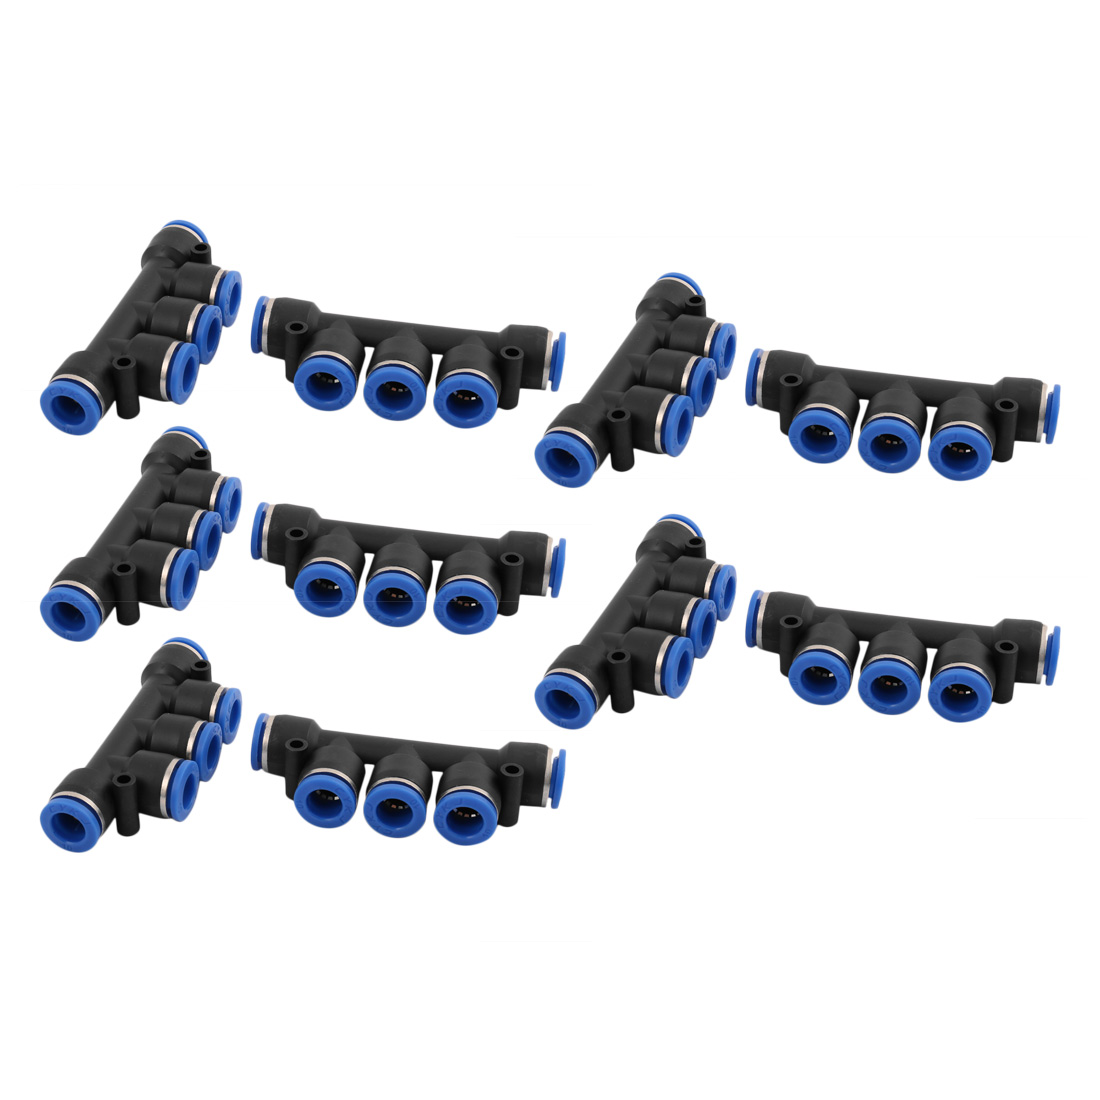 10Pcs 10mm Dia 5 Ways Tube Hose Pneumatic Air Quick Fitting Push In Connector